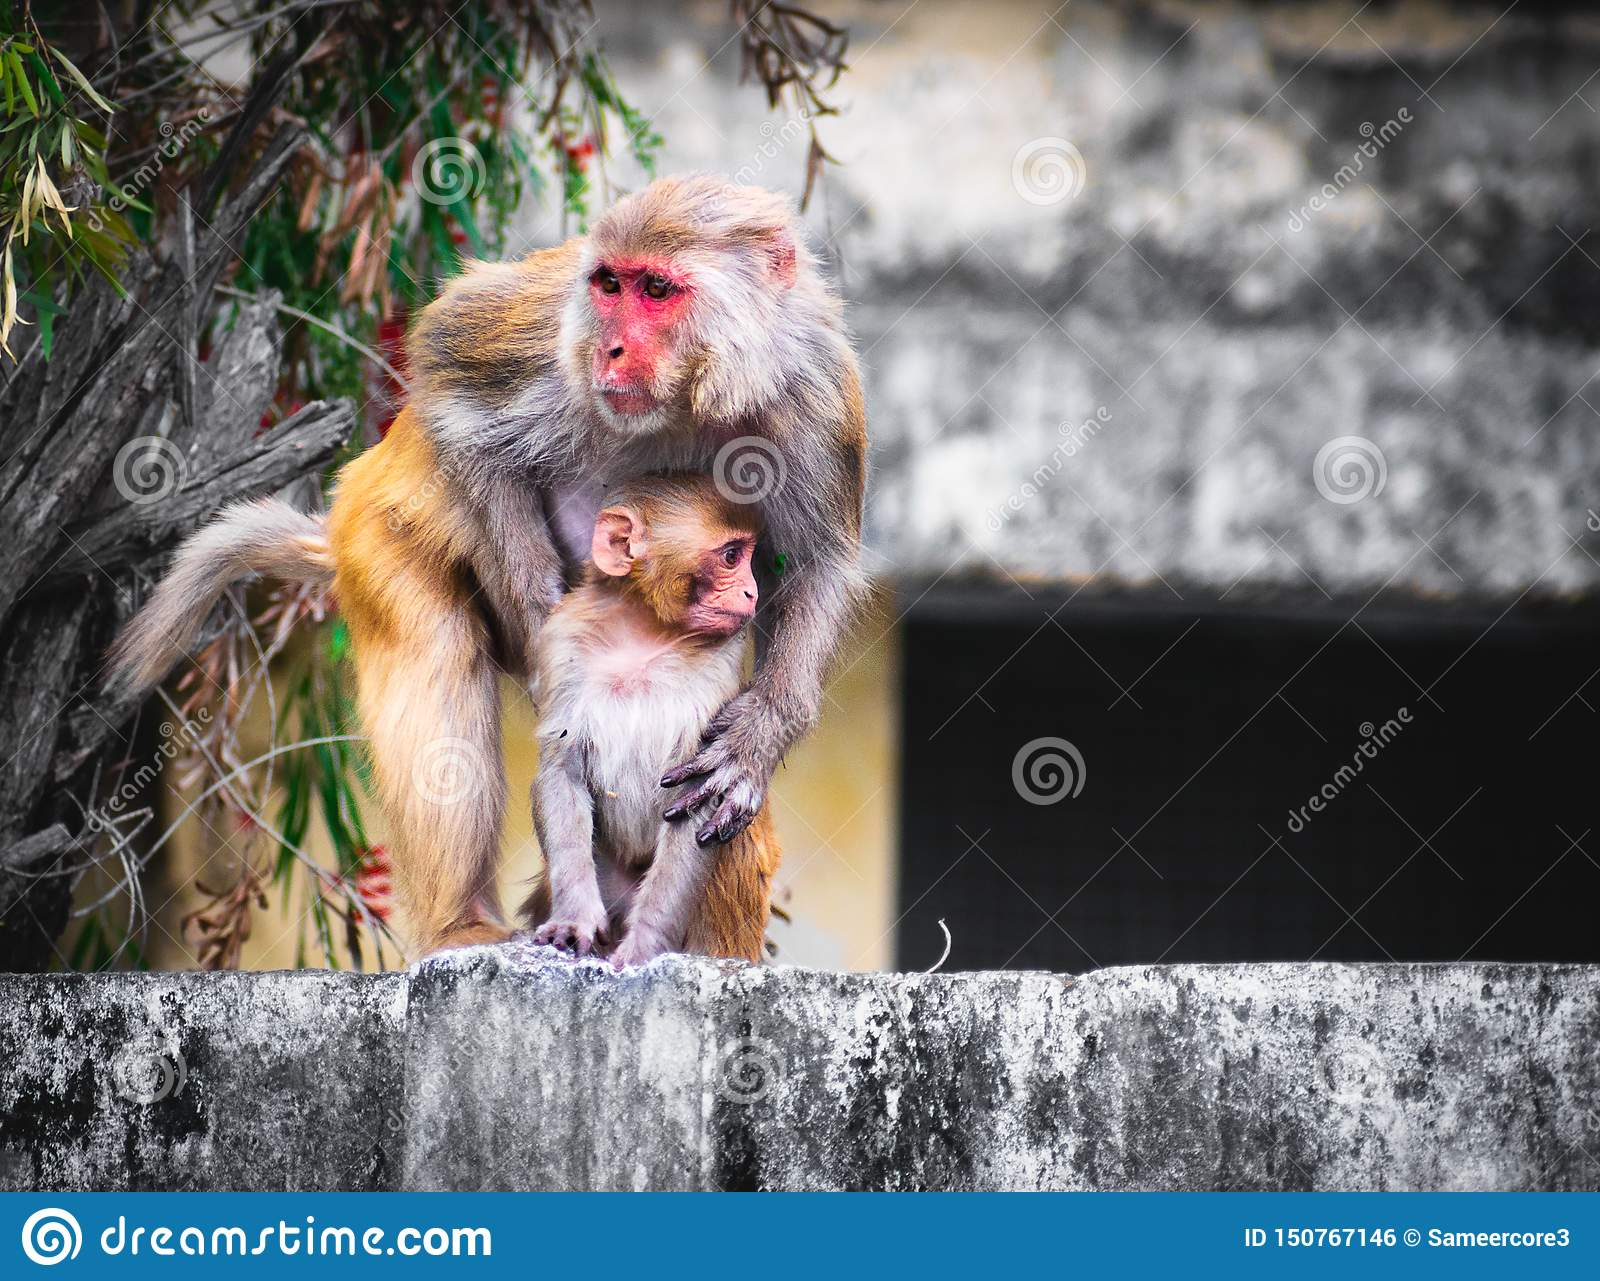 Monkey holding baby monkey on wall background